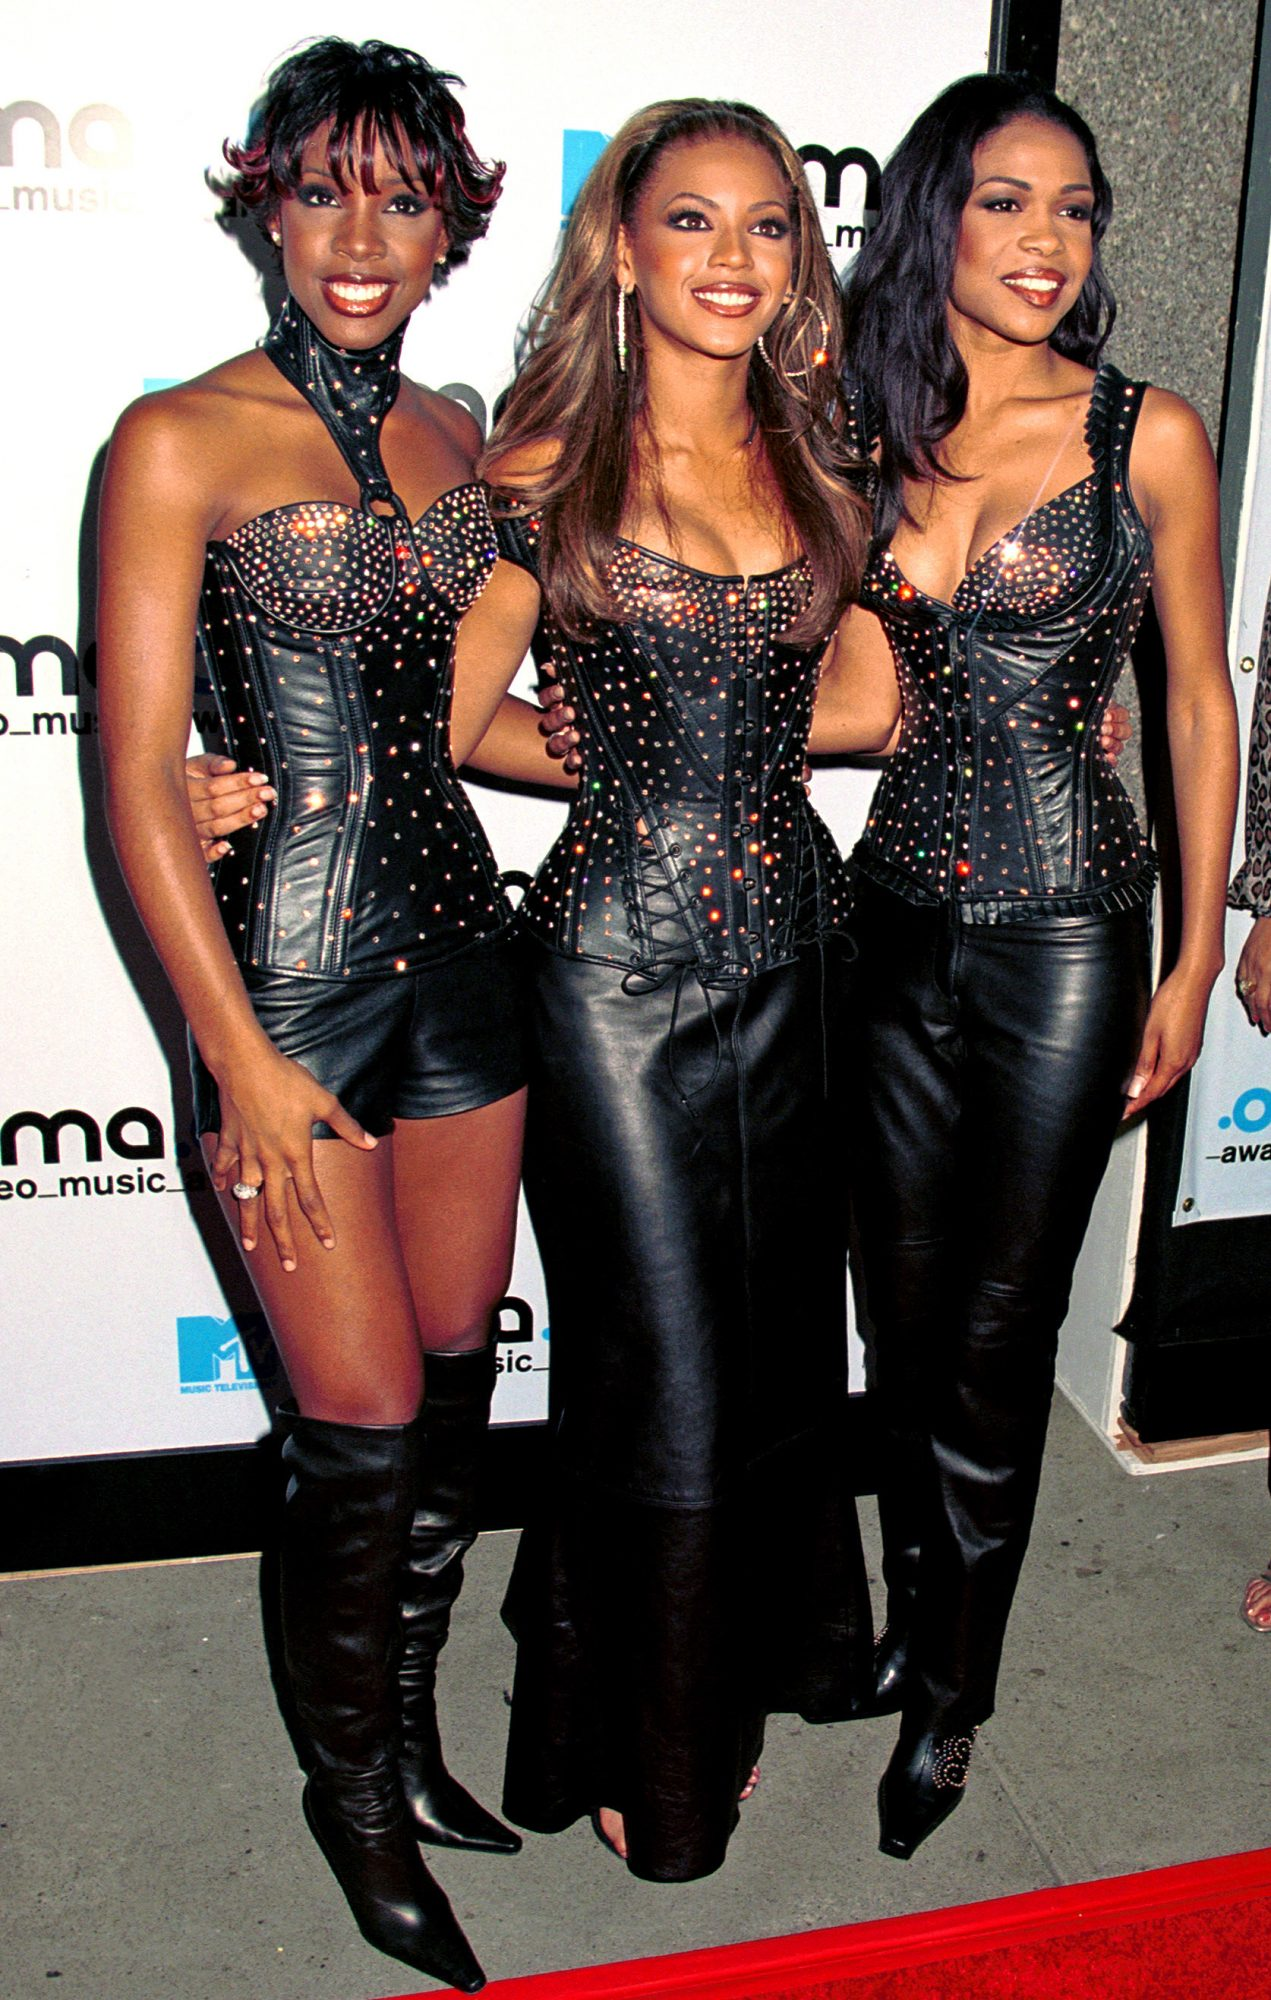 377894 02: R&B group Destiny's Child pose for photographers at the 2000 MTV Video Music Awards September 7, 2000 at Radio City Music Hall in New York City. (Photo by George DeSota/Liaison)